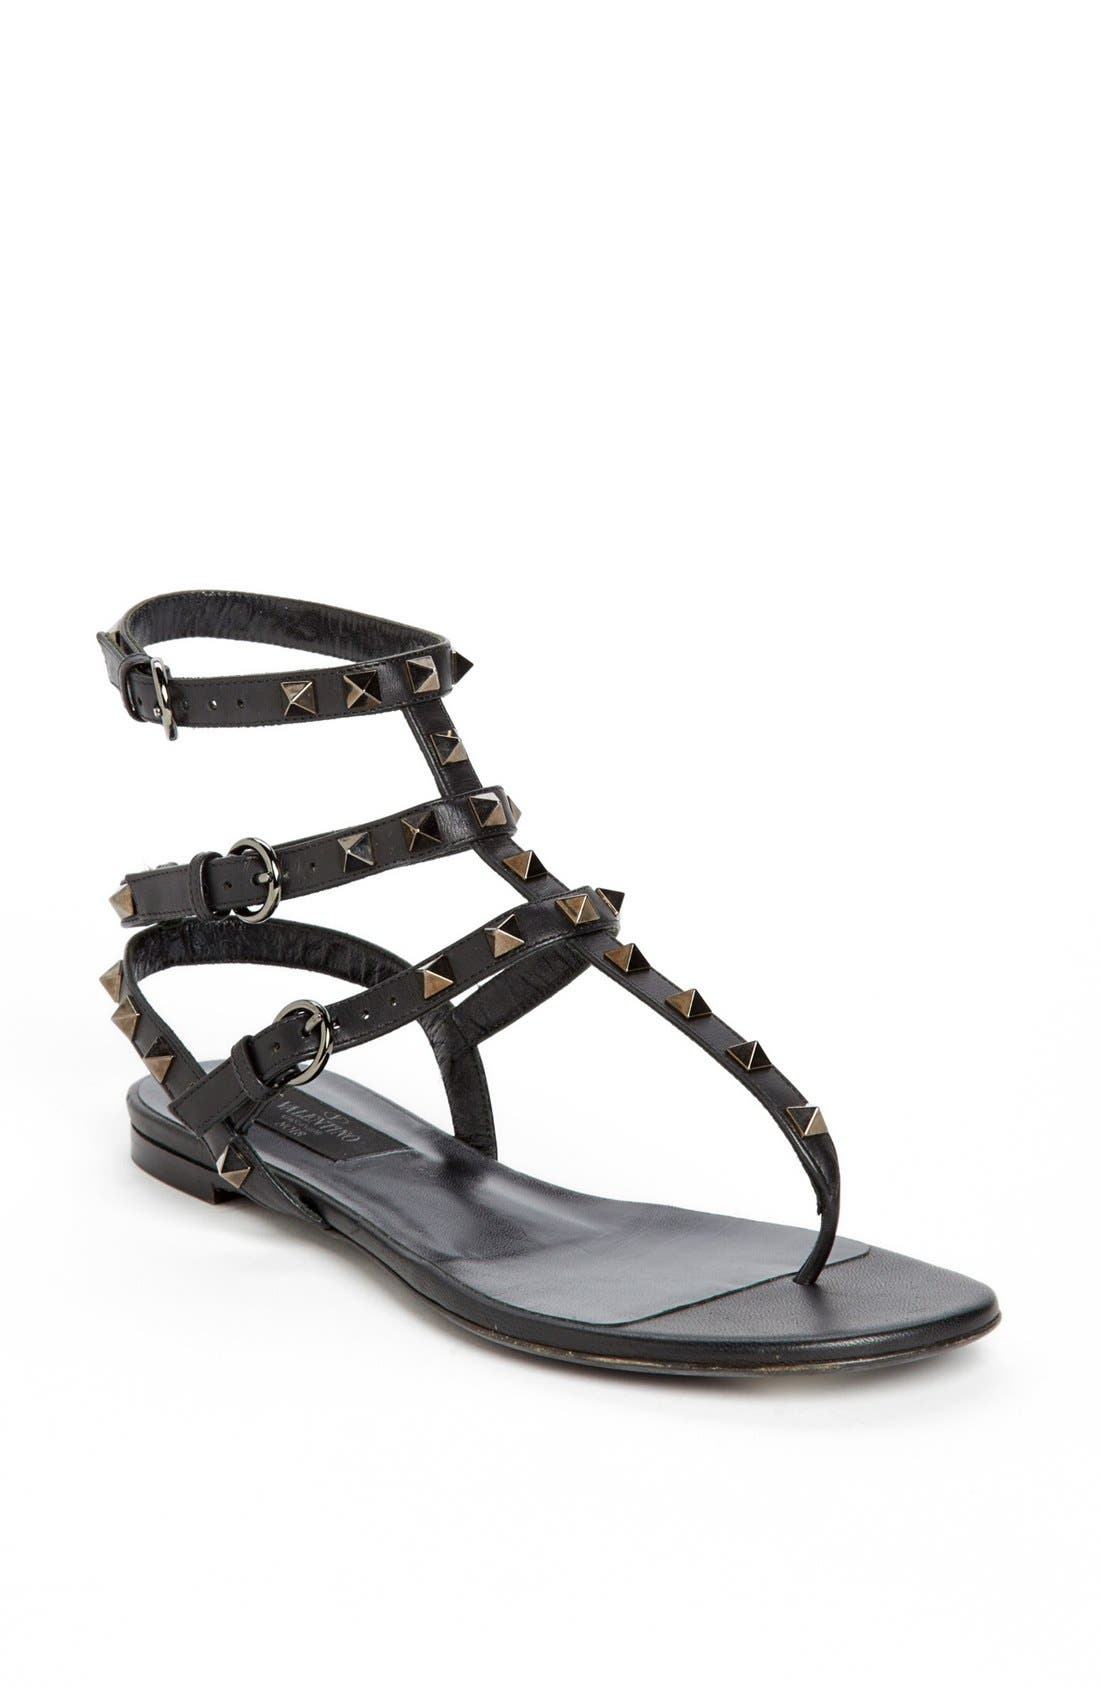 Alternate Image 1 Selected - VALENTINO GARAVANI 'Noir Rockstud' Thong Sandal